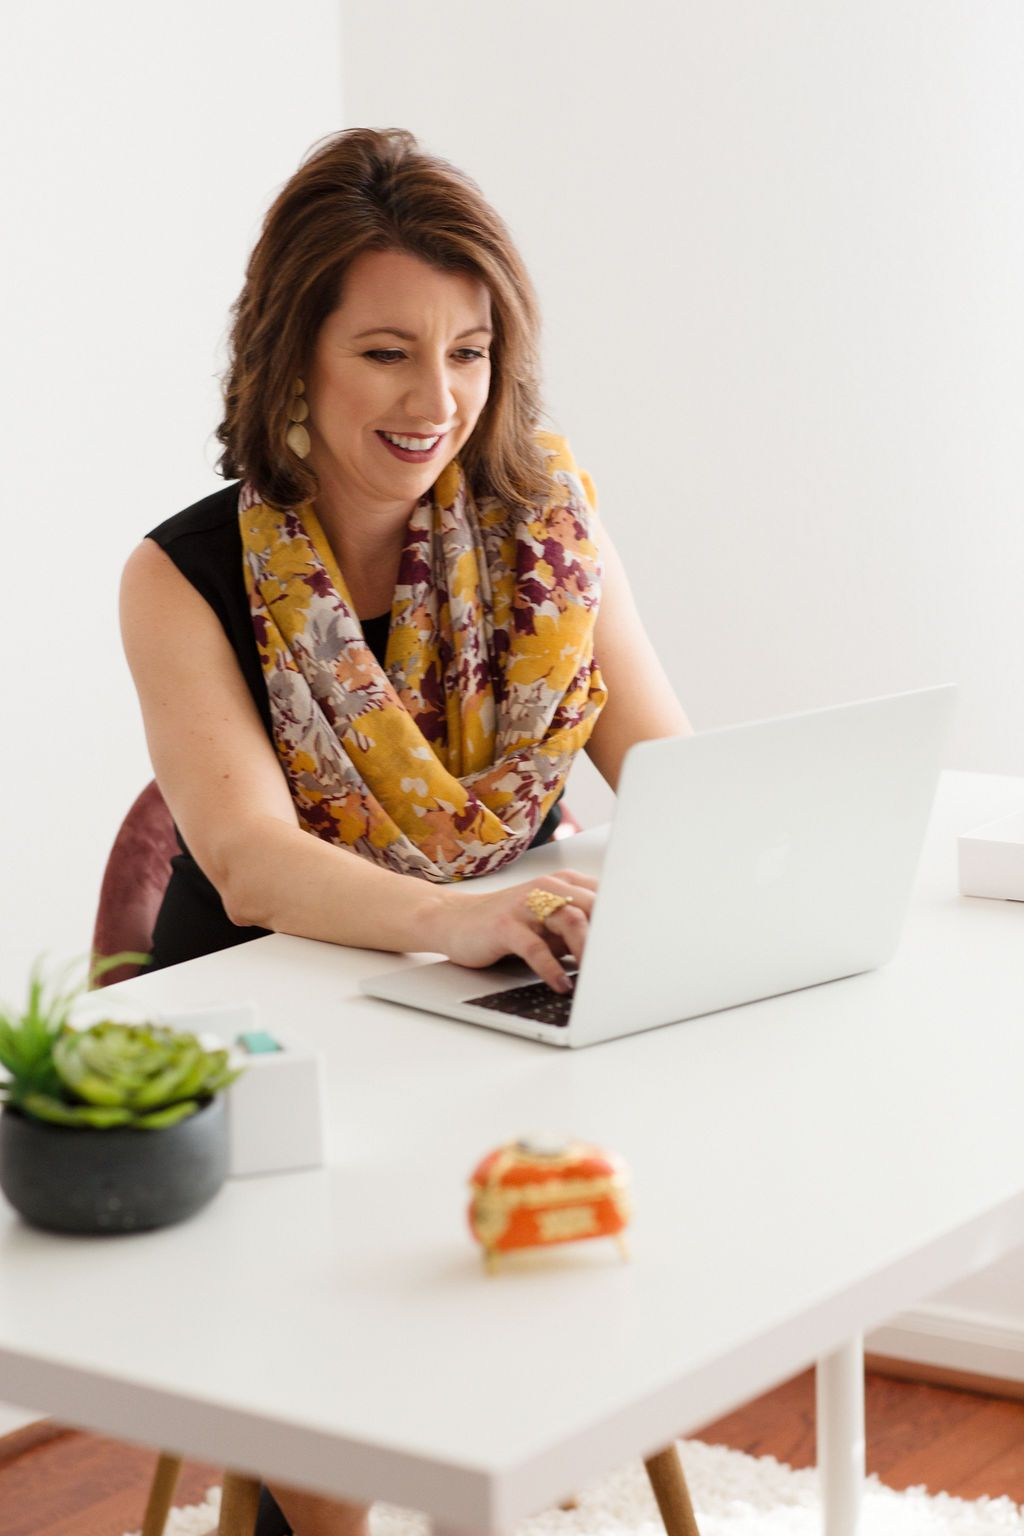 Personal brand photography for virtual assistant in white office